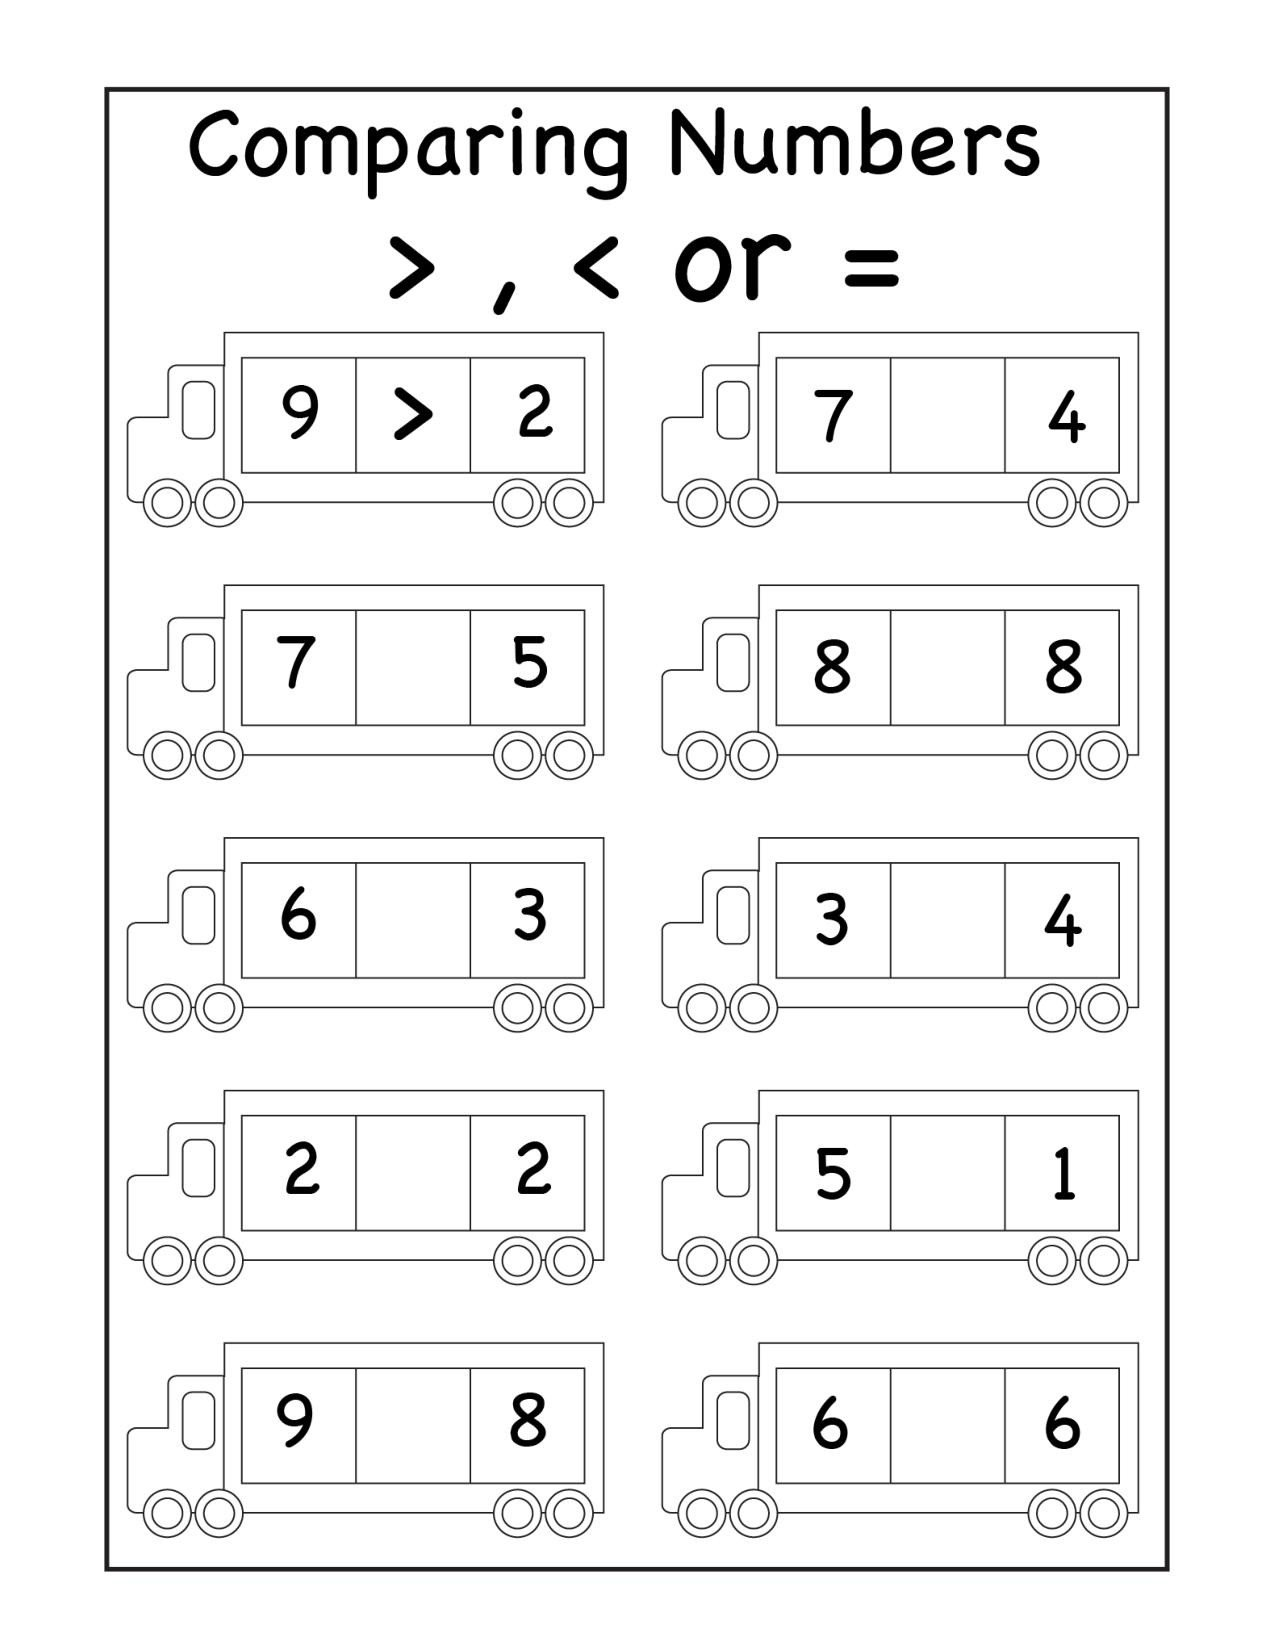 wfun15 greater less equal 1 page paring numbers worksheets calculator video for first grade free